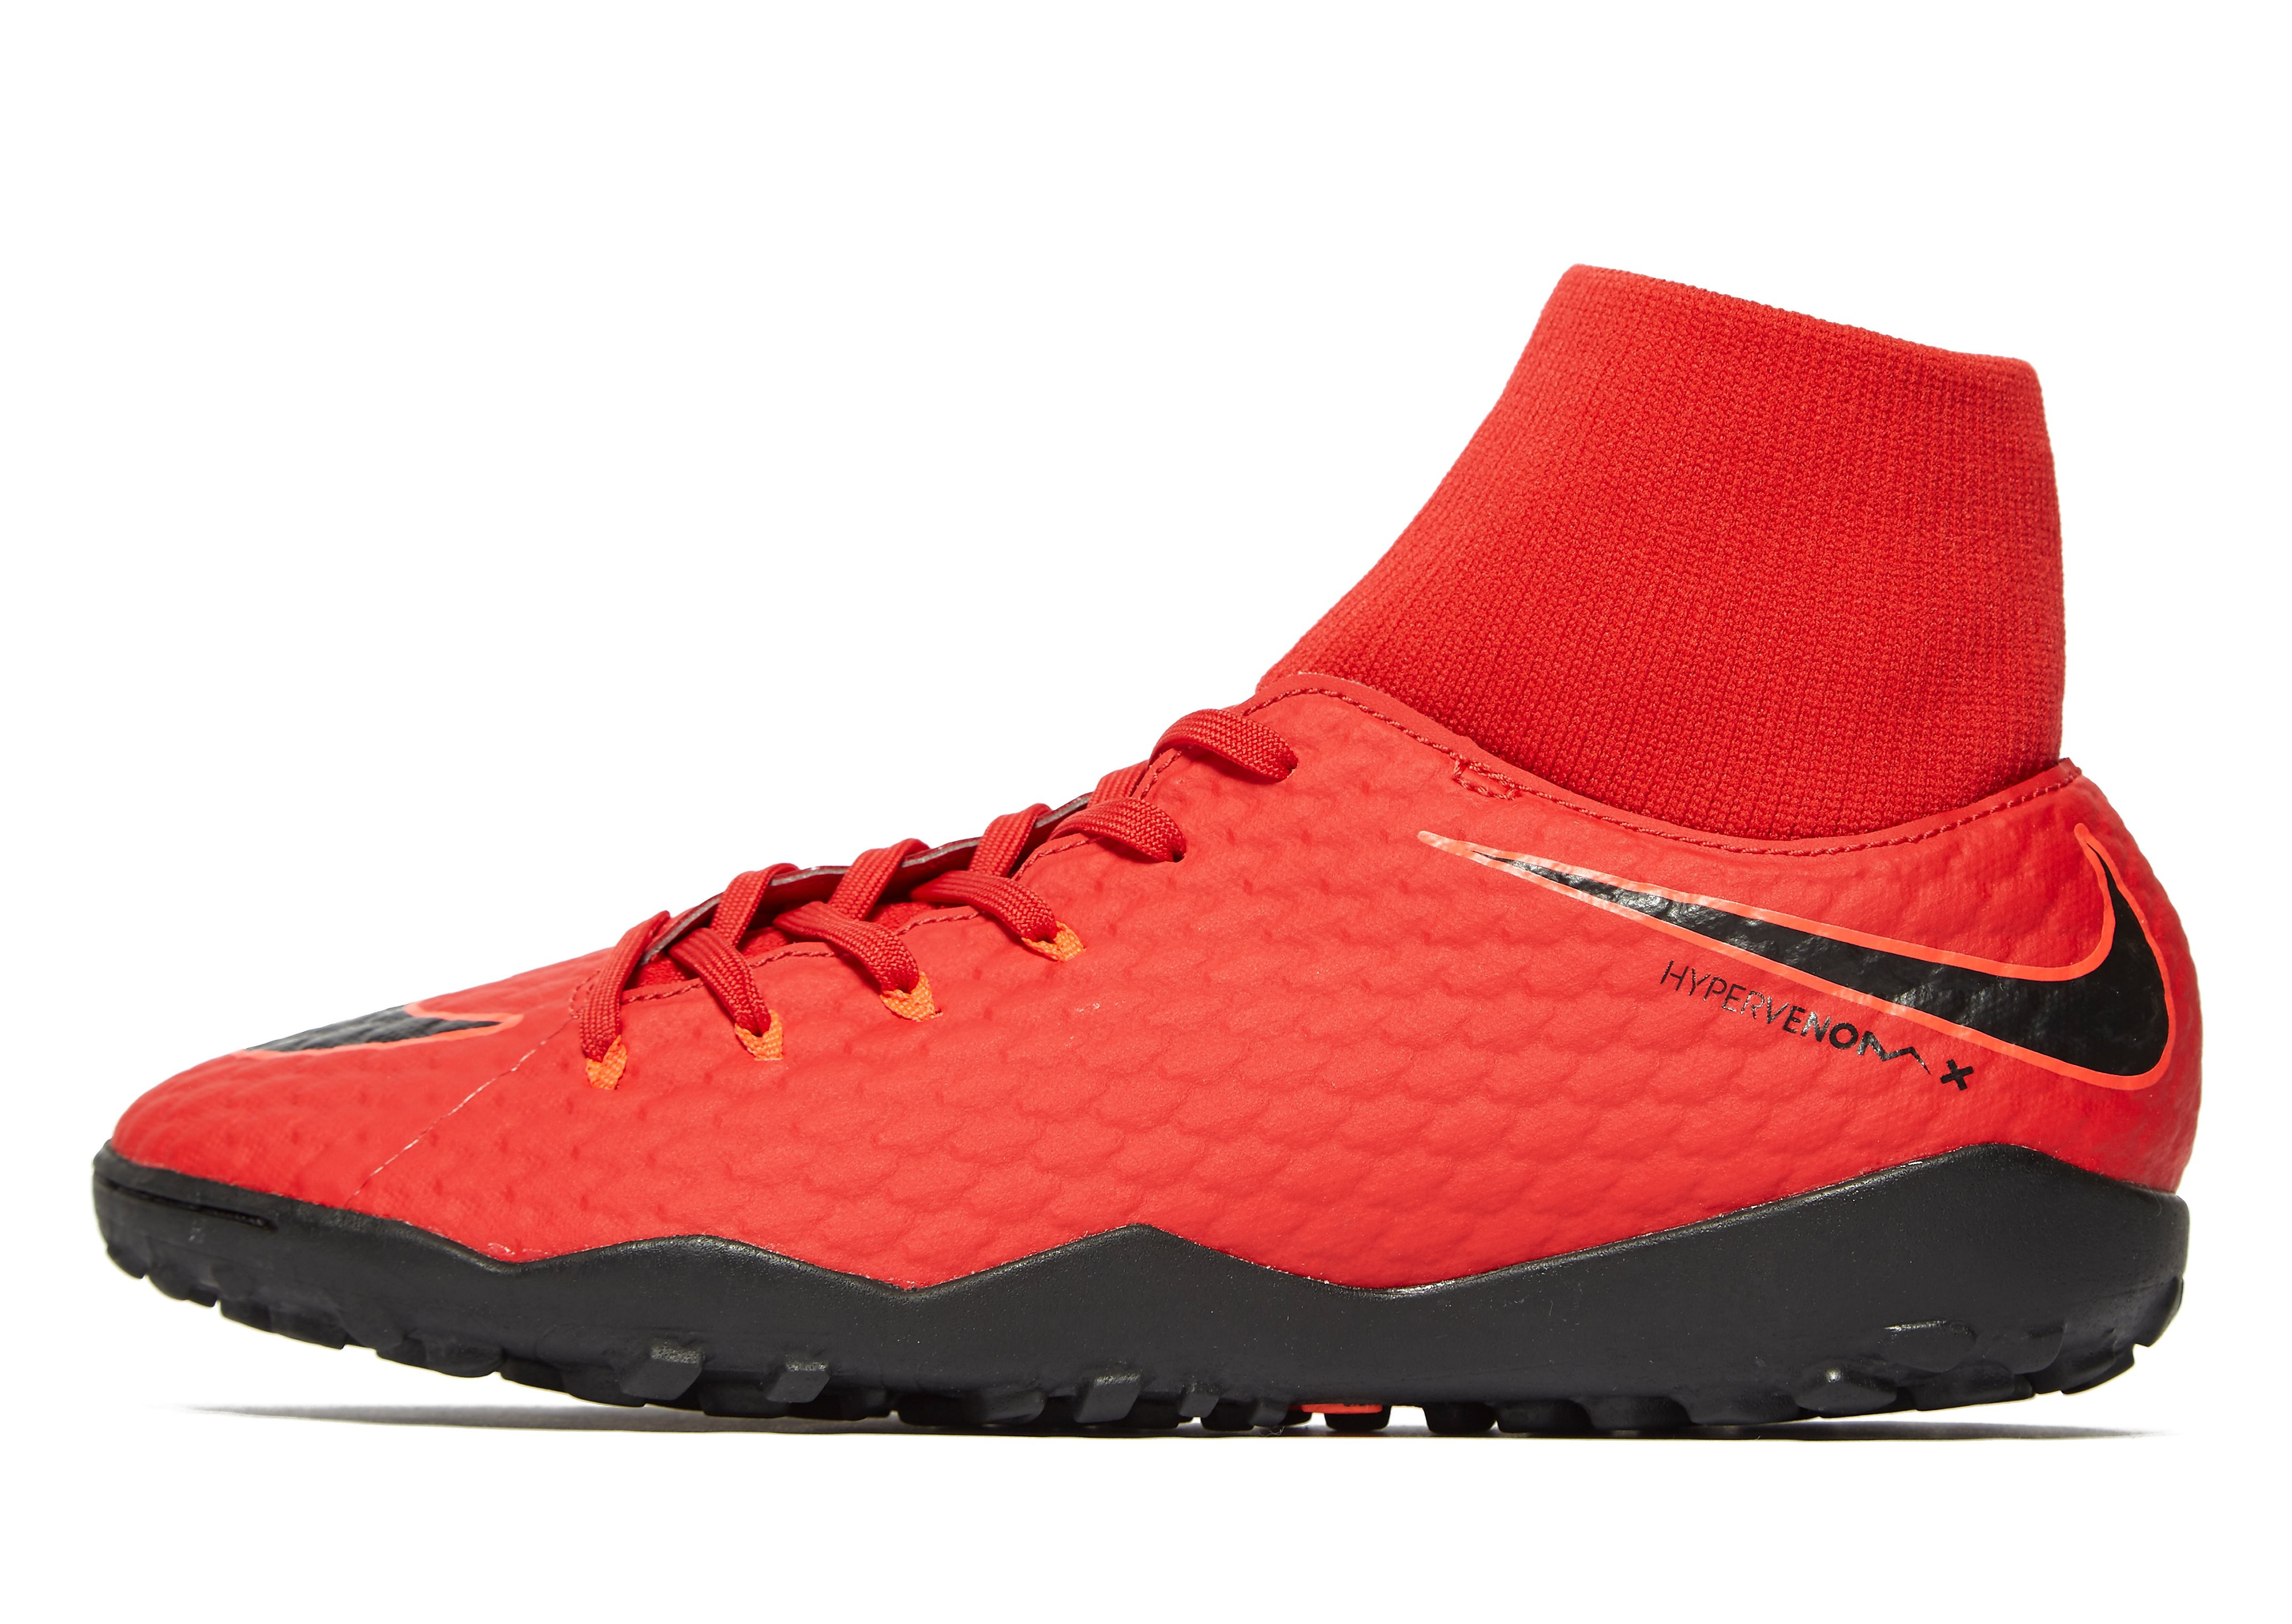 Nike Fire and Ice Hypervenom Phelon Dynamic Fit TF